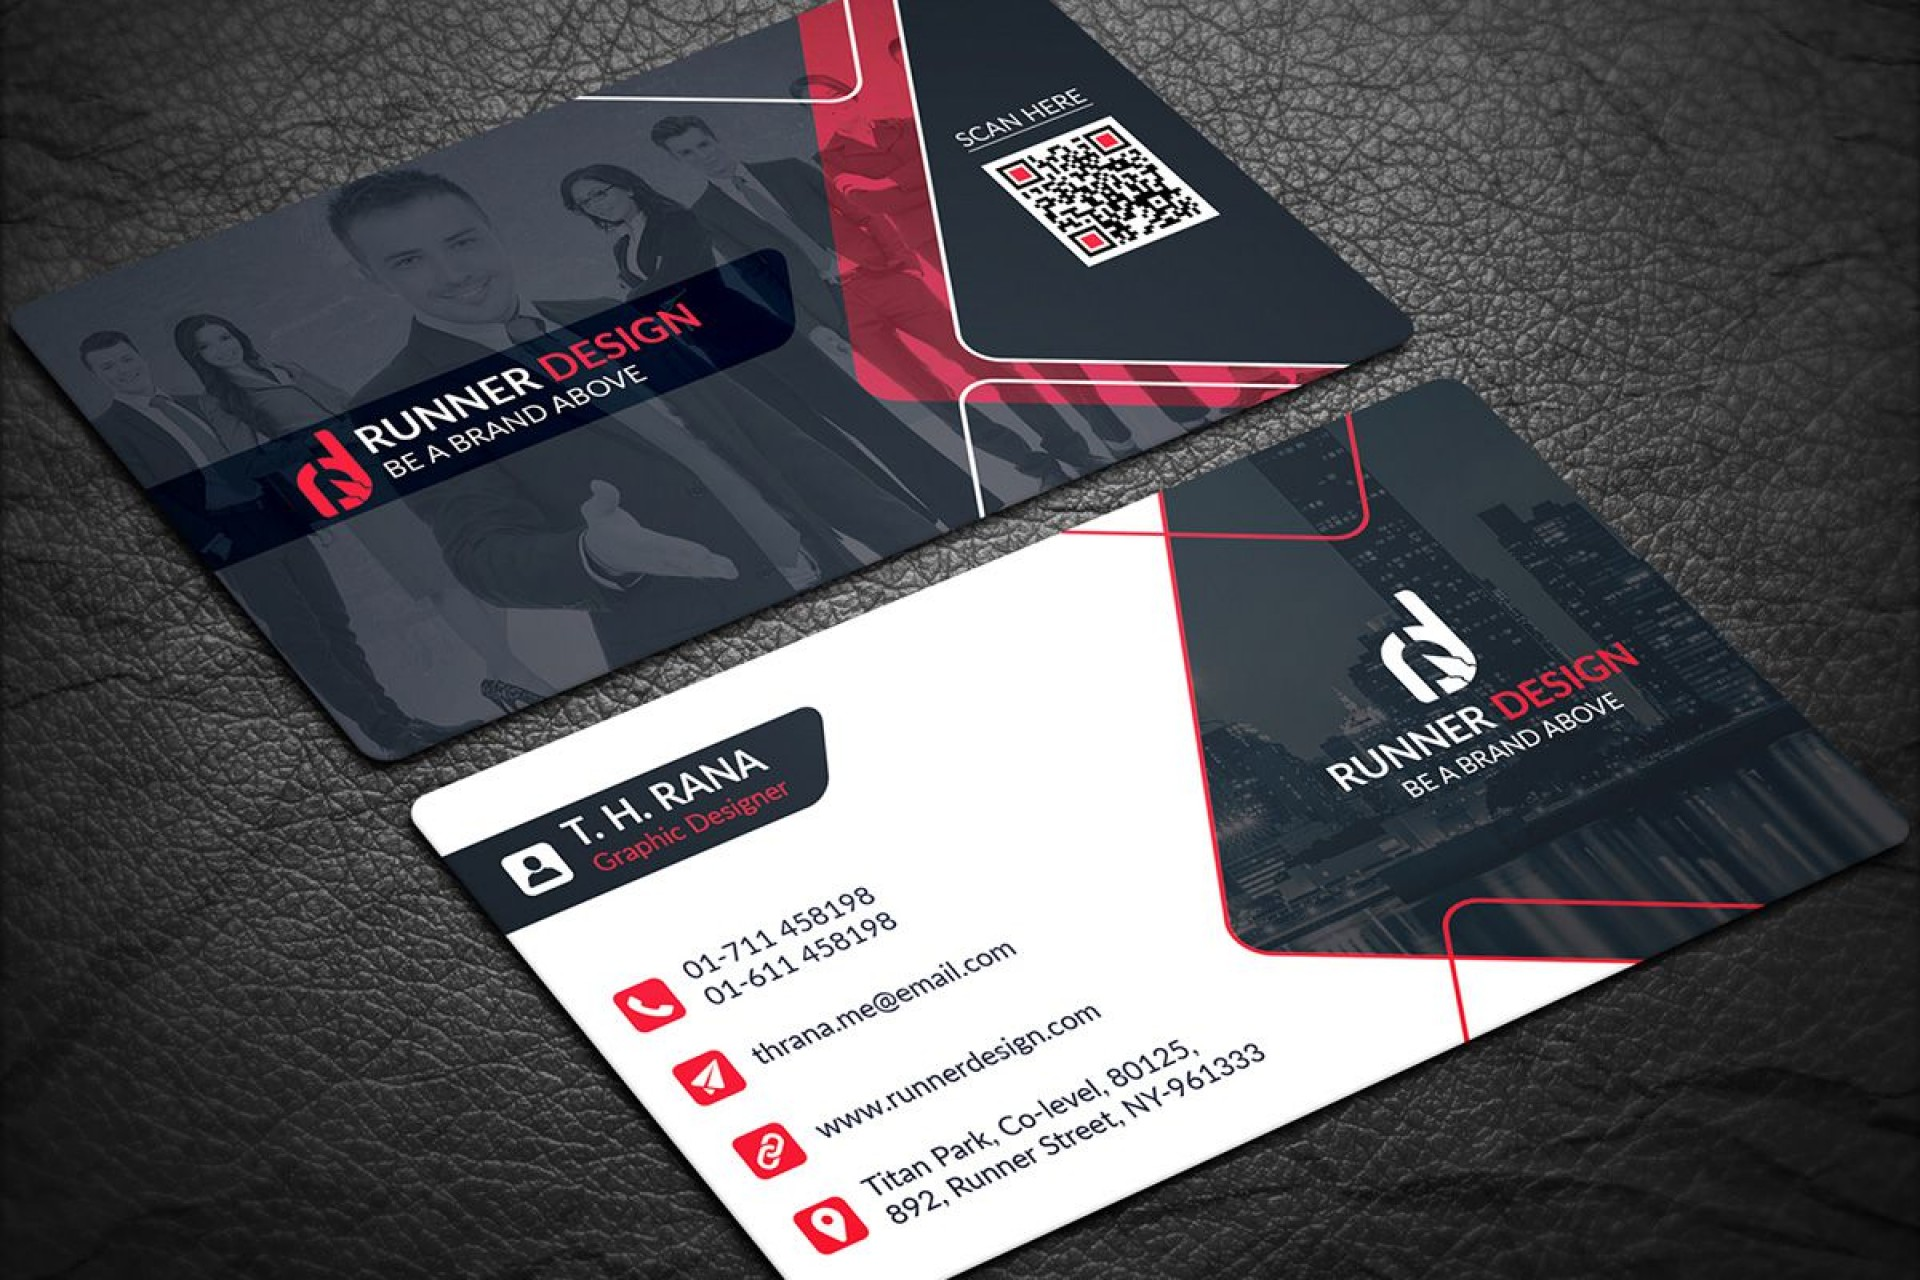 002 Remarkable Blank Busines Card Template Psd Free Sample  Photoshop Download1920